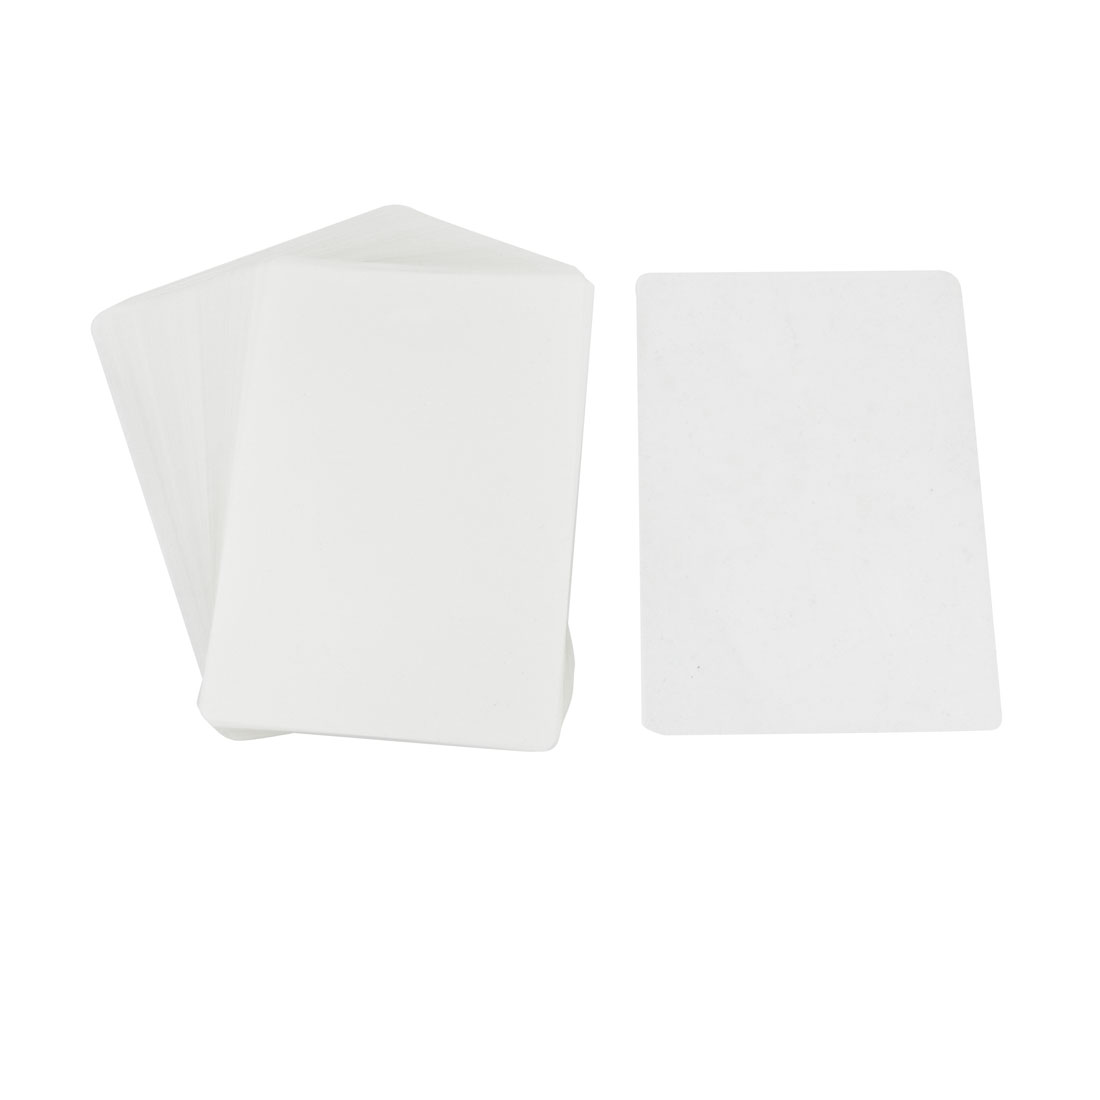 100 Pcs 220mm x 160mm 5R 75mic Glossy Picture Protector Laminating Film